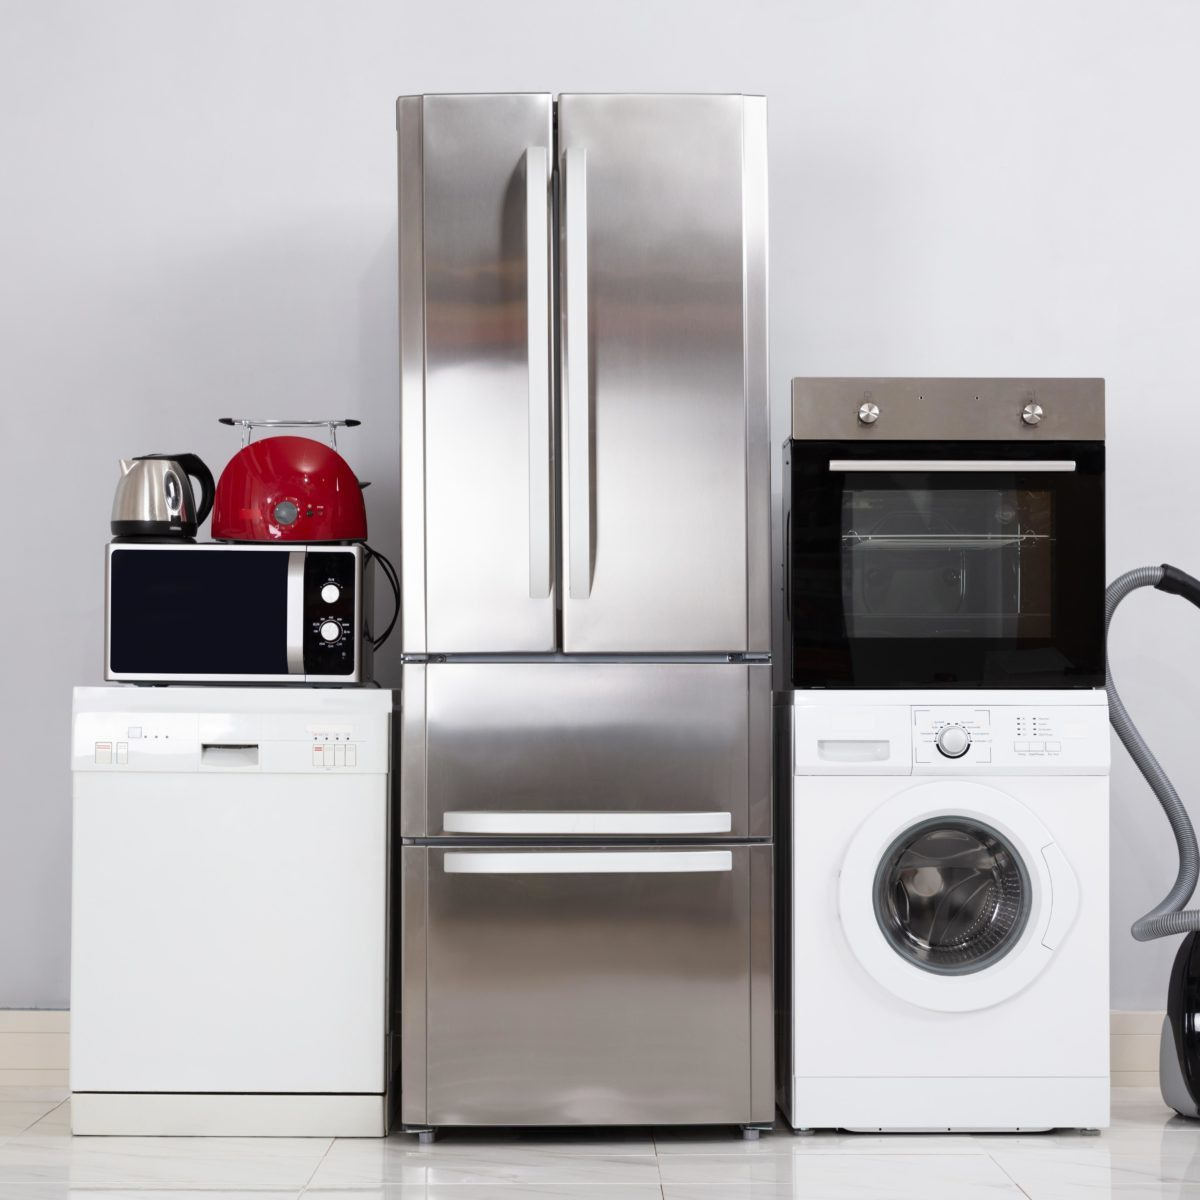 The 8 Least Reliable (and the 8 Most Reliable) Home Appliance Brands